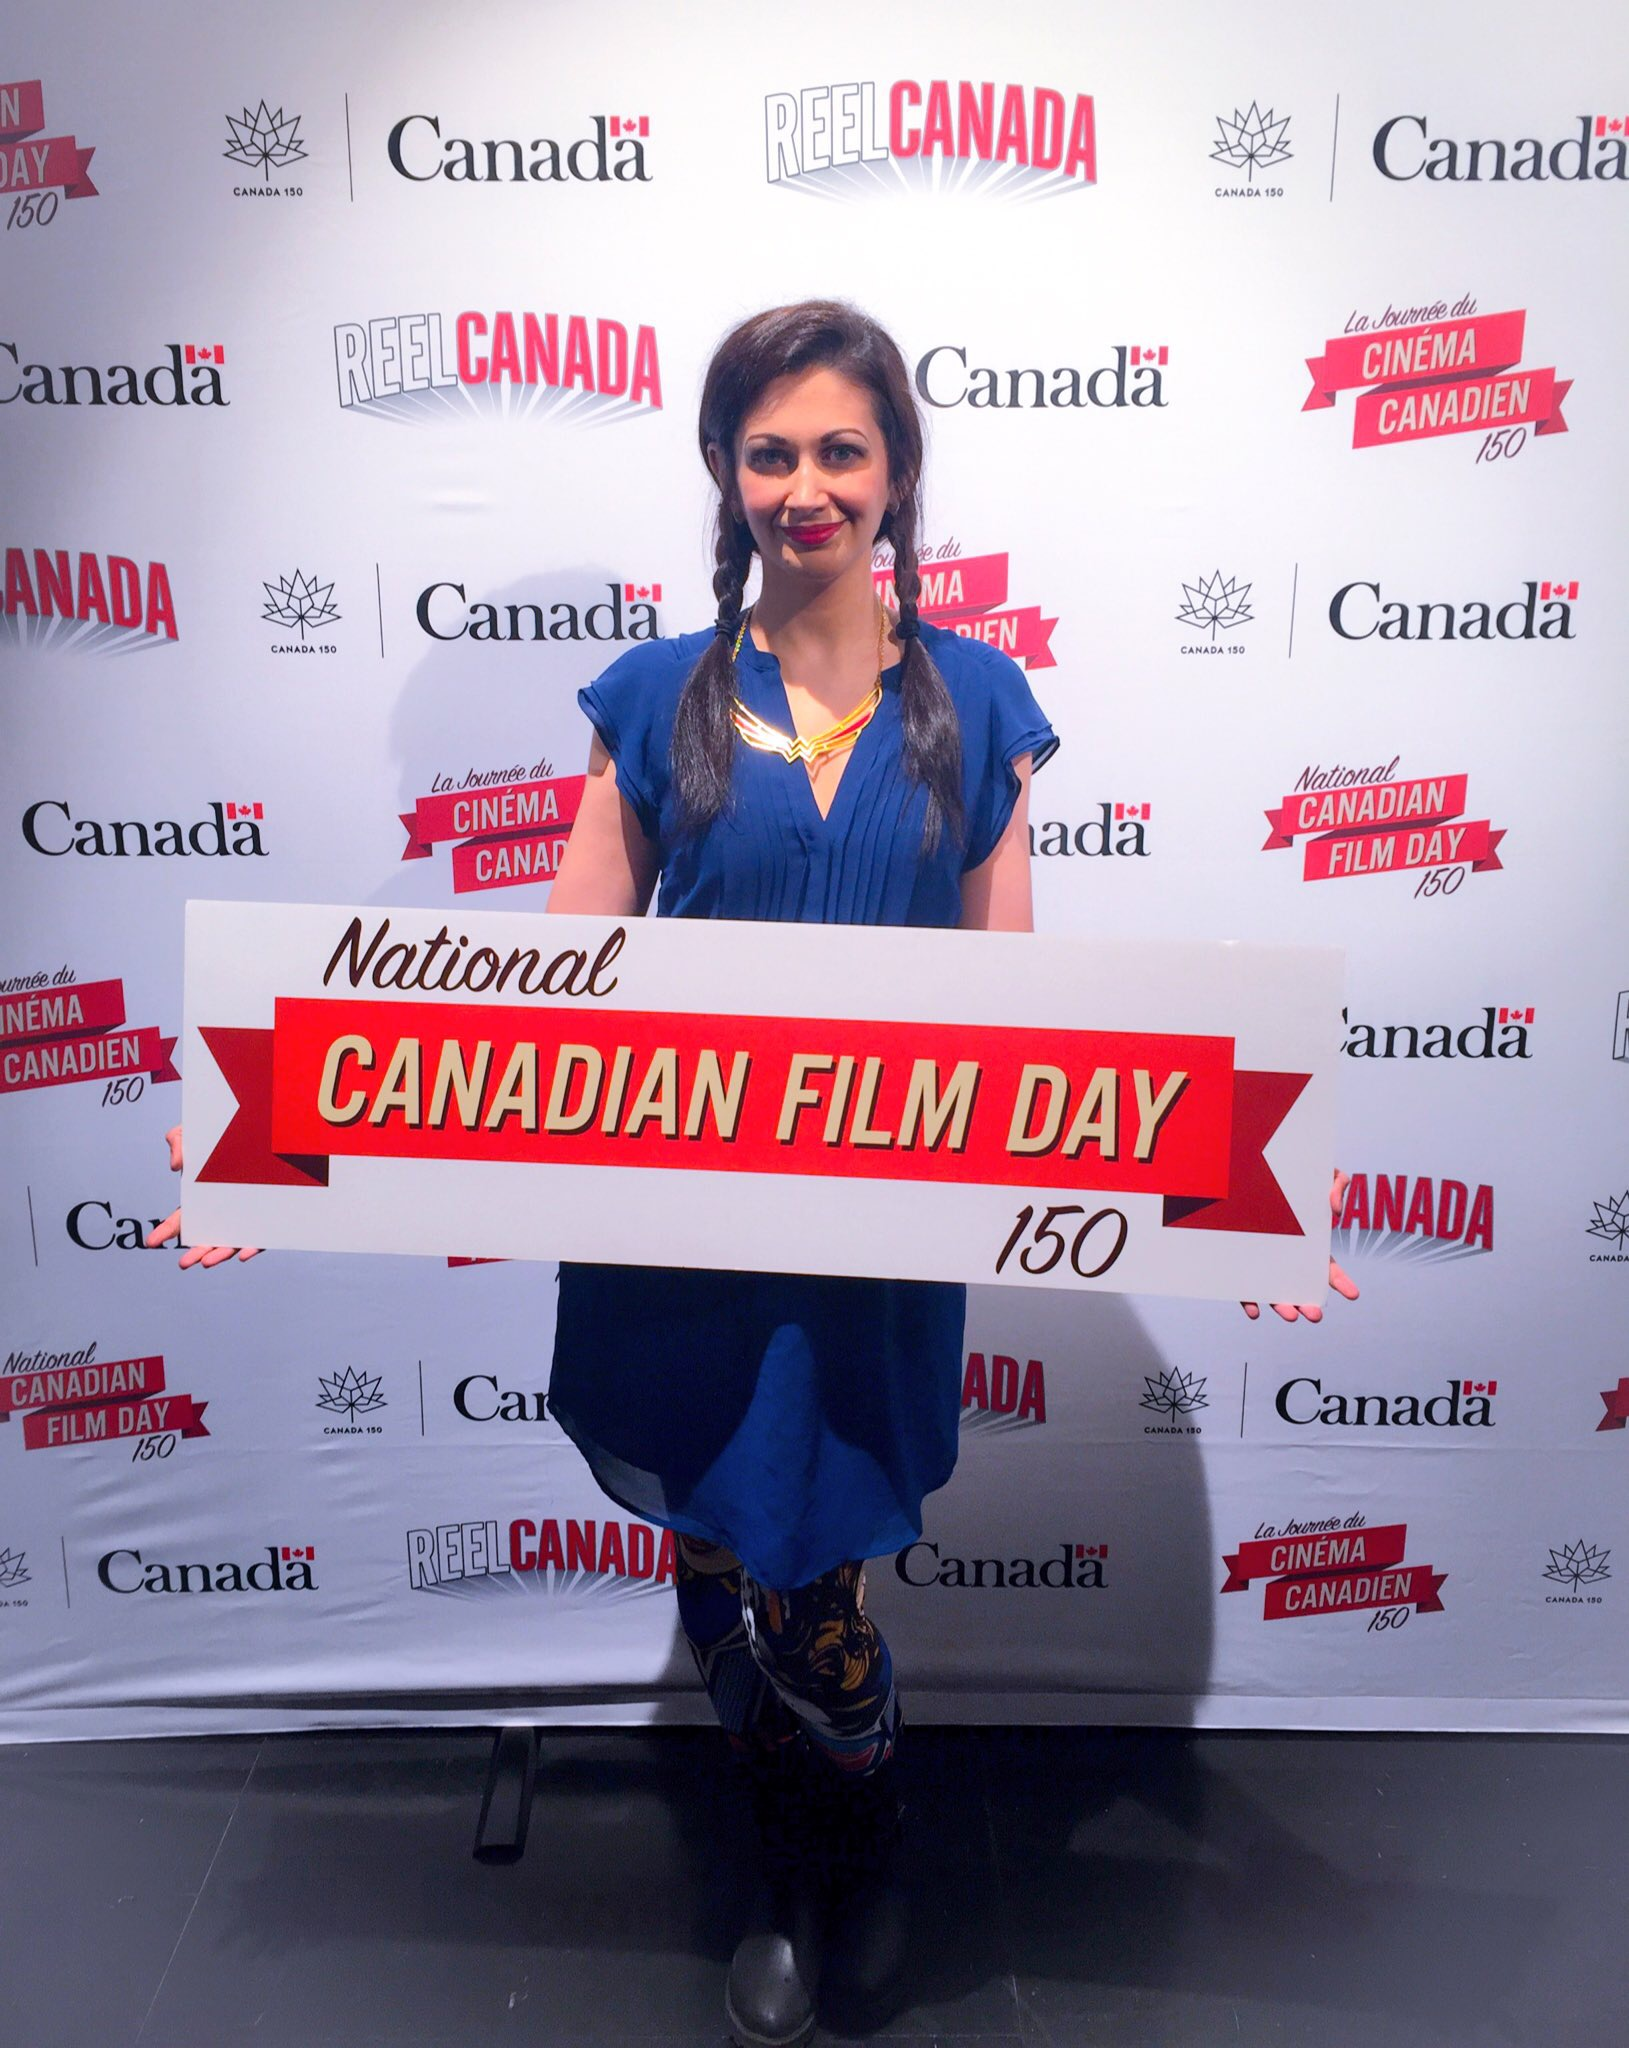 Unabashed year-round lover of Canadian film Sabrina Furminger at a #CanFilmDay event.